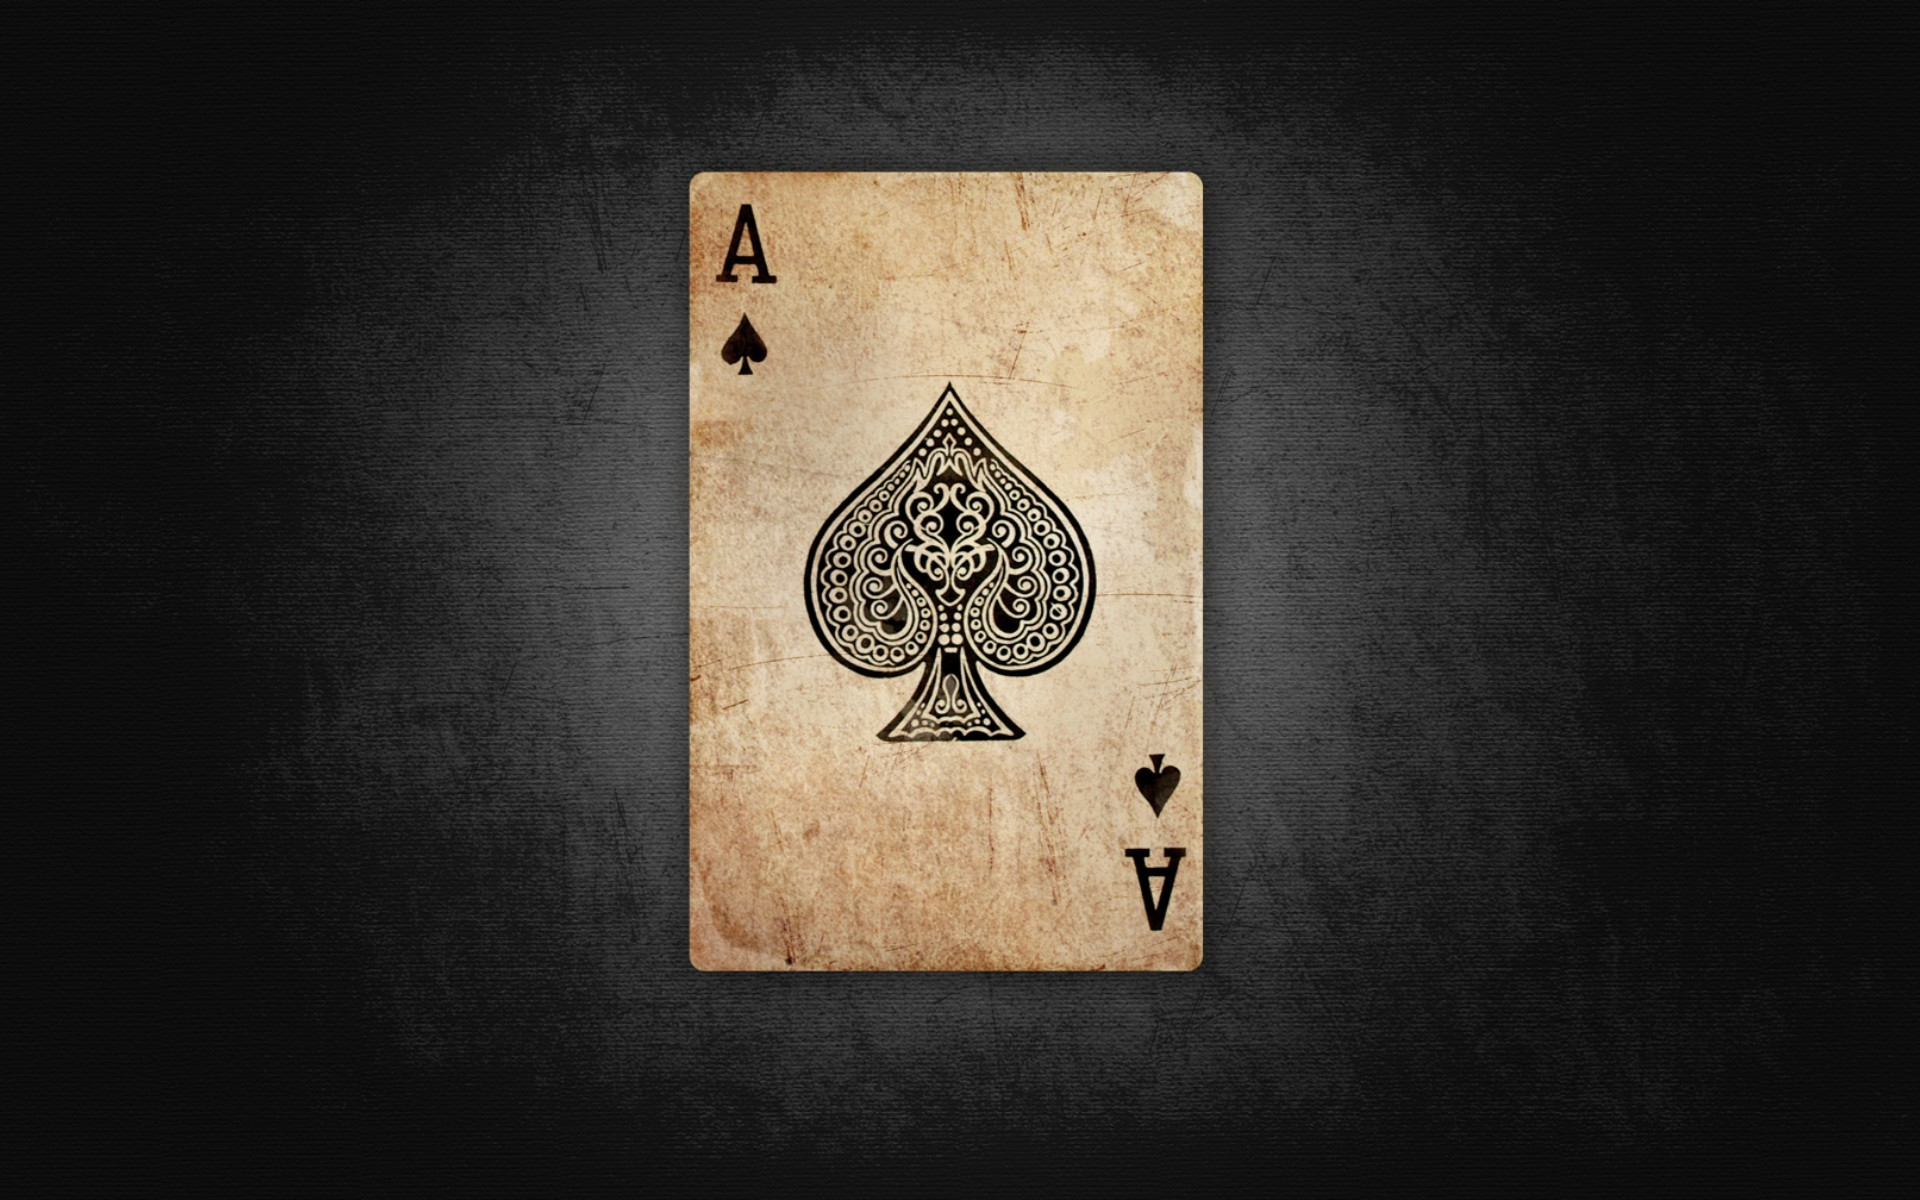 Free Ace of Spades Wallpapers, Free Ace of Spades HD Wallpapers, Ace .